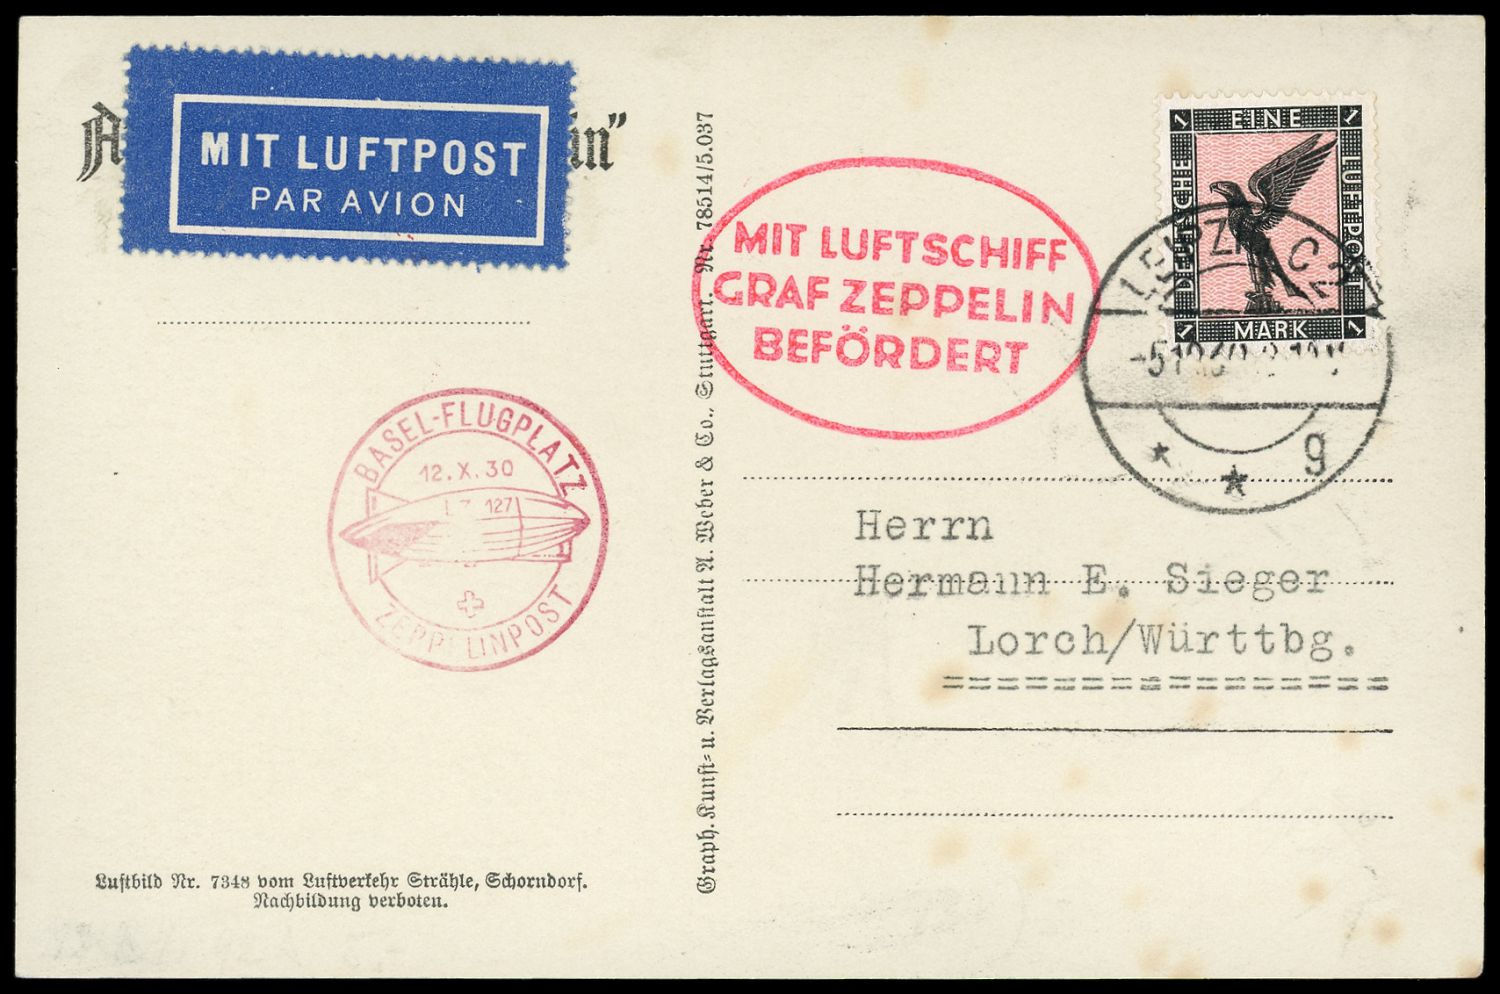 Lot 11255 - zeppelinpost deutschland  -  Auktionshaus Klüttermann GmbH Auction number 1